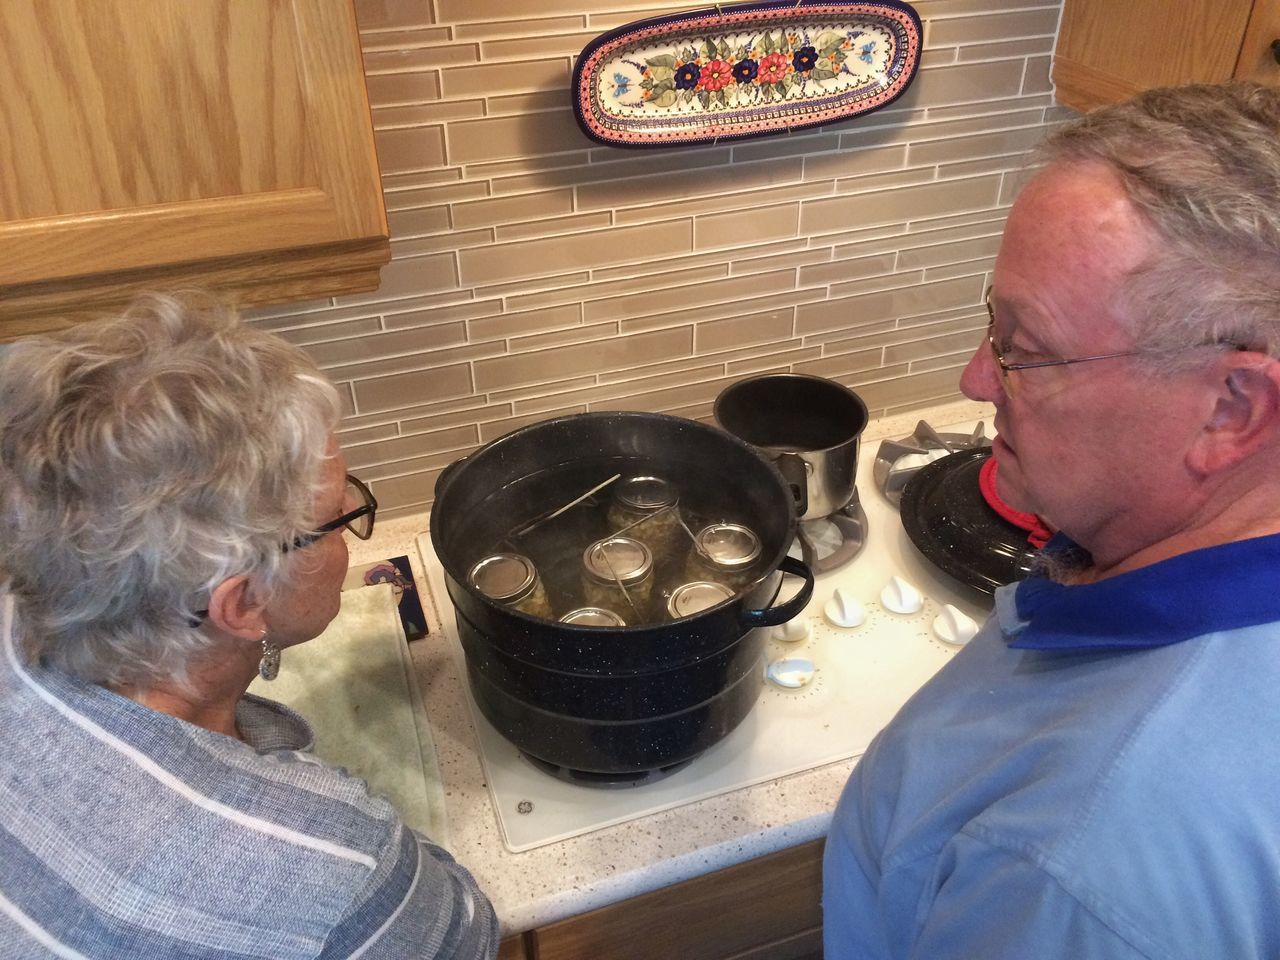 Home canning corn salsa, California Adult Canning Canning Jars Casual Clothing Day Eyeglasses  Food Gray Hair Healthcare And Medicine High Angle View Indoors  Lifestyles Men One Person Patient People Real People Senior Adult Senior Men Senior Women Water Bath